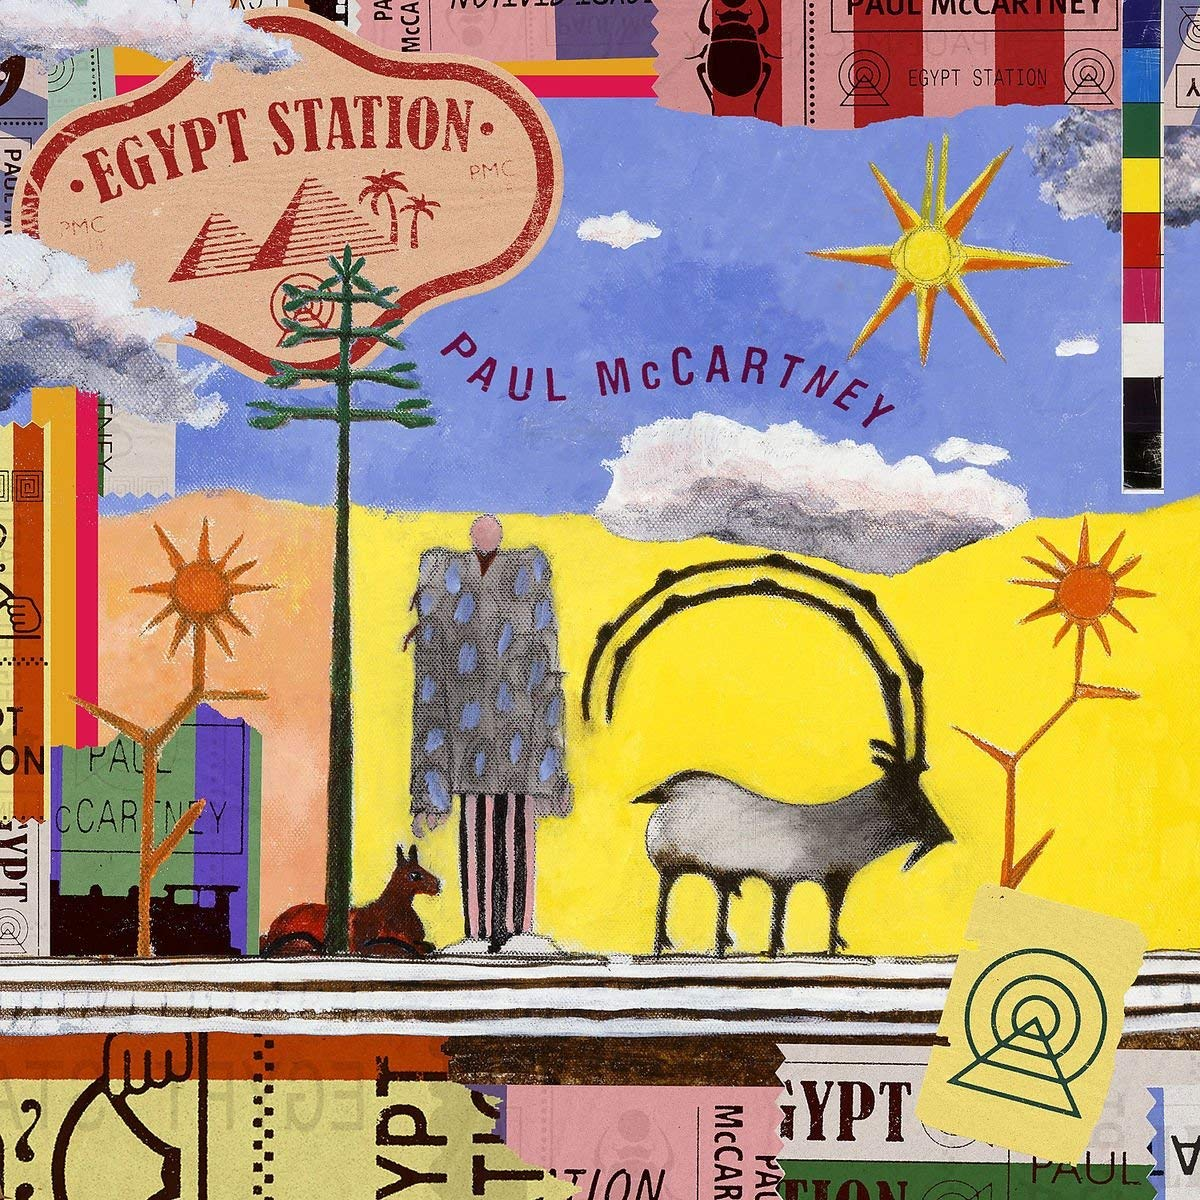 CD Shop - MCCARTNEY PAUL EGYPT STATION/DLX LTD